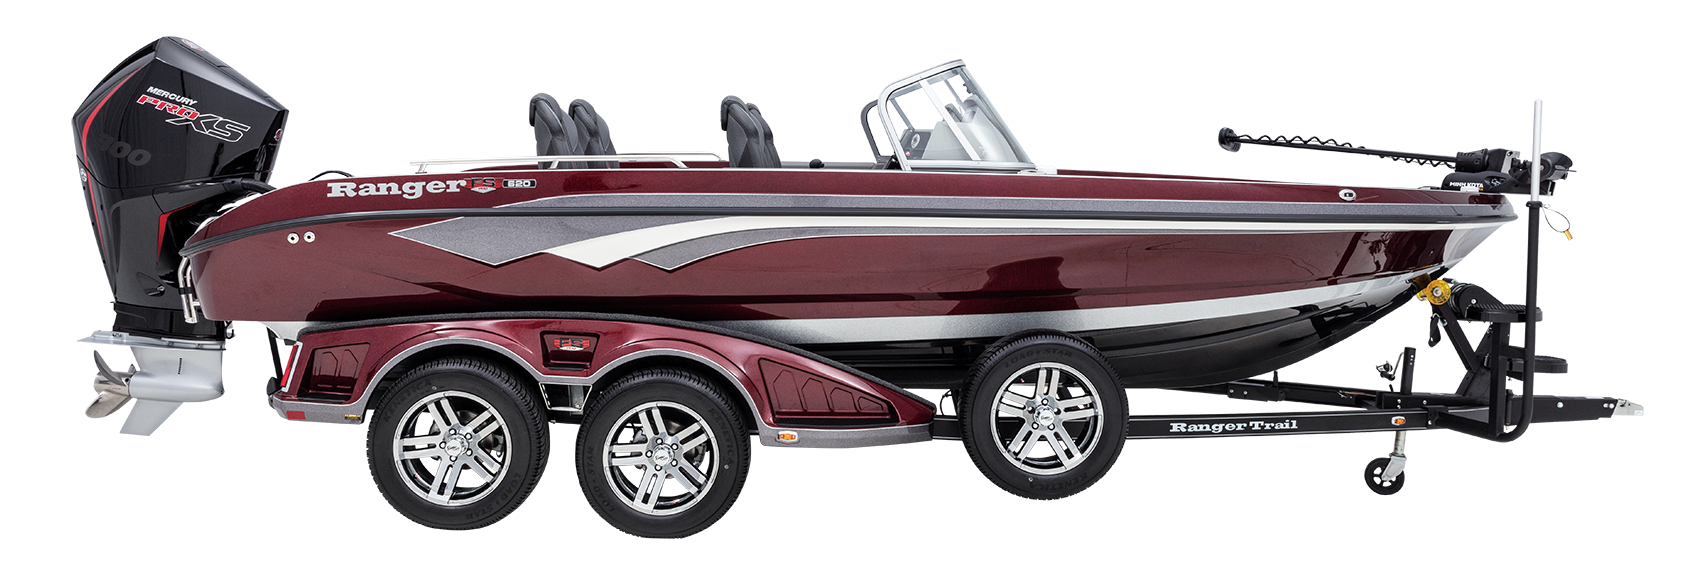 Ranger 620FS PRO all-new deep V multi species walleye boat